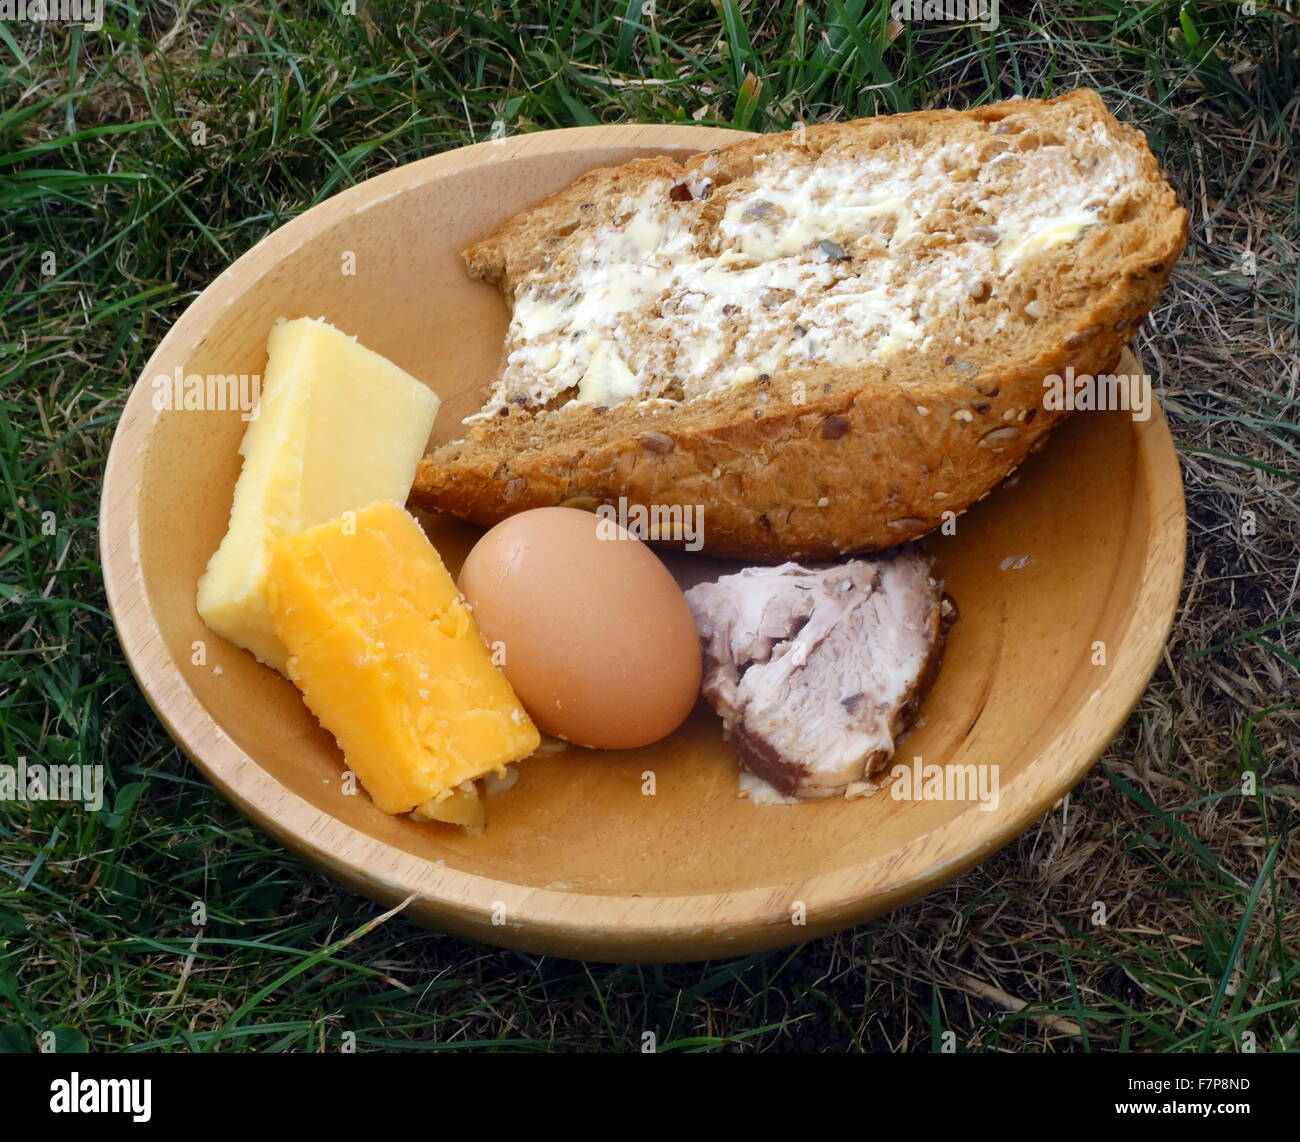 18th century british army food rations reconstruction